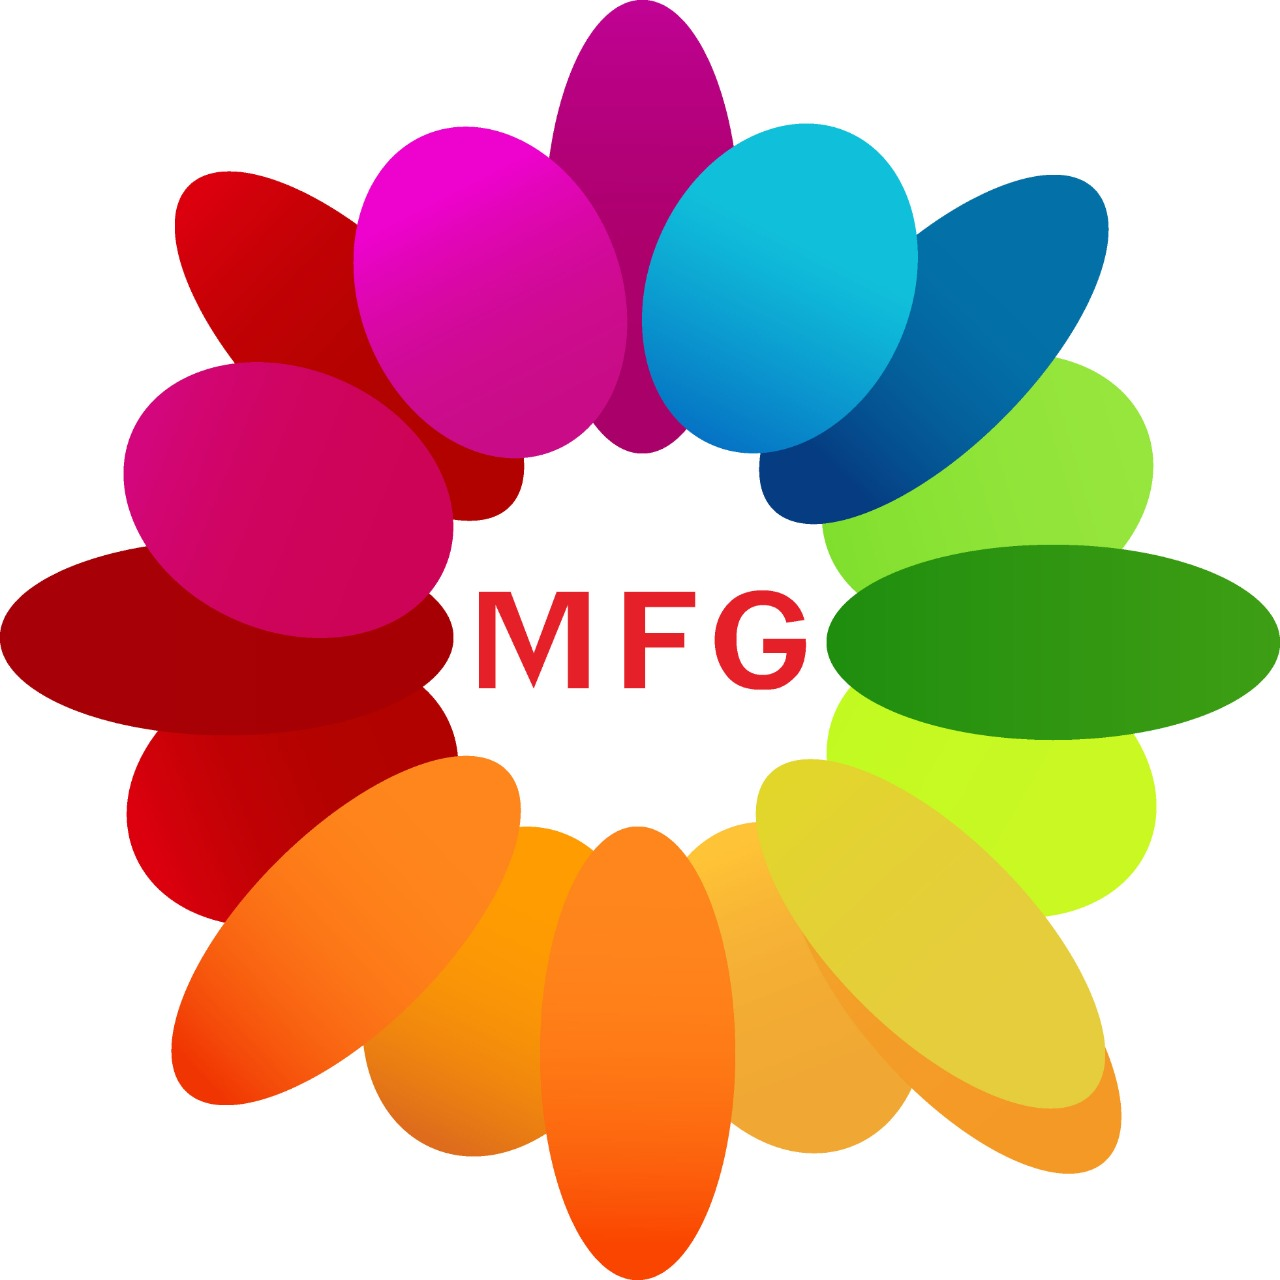 Bunch of 100 Red Roses Bottle Of Champegne , 1 Kg Chocolate Cake, 10 Heart Shape Balloons